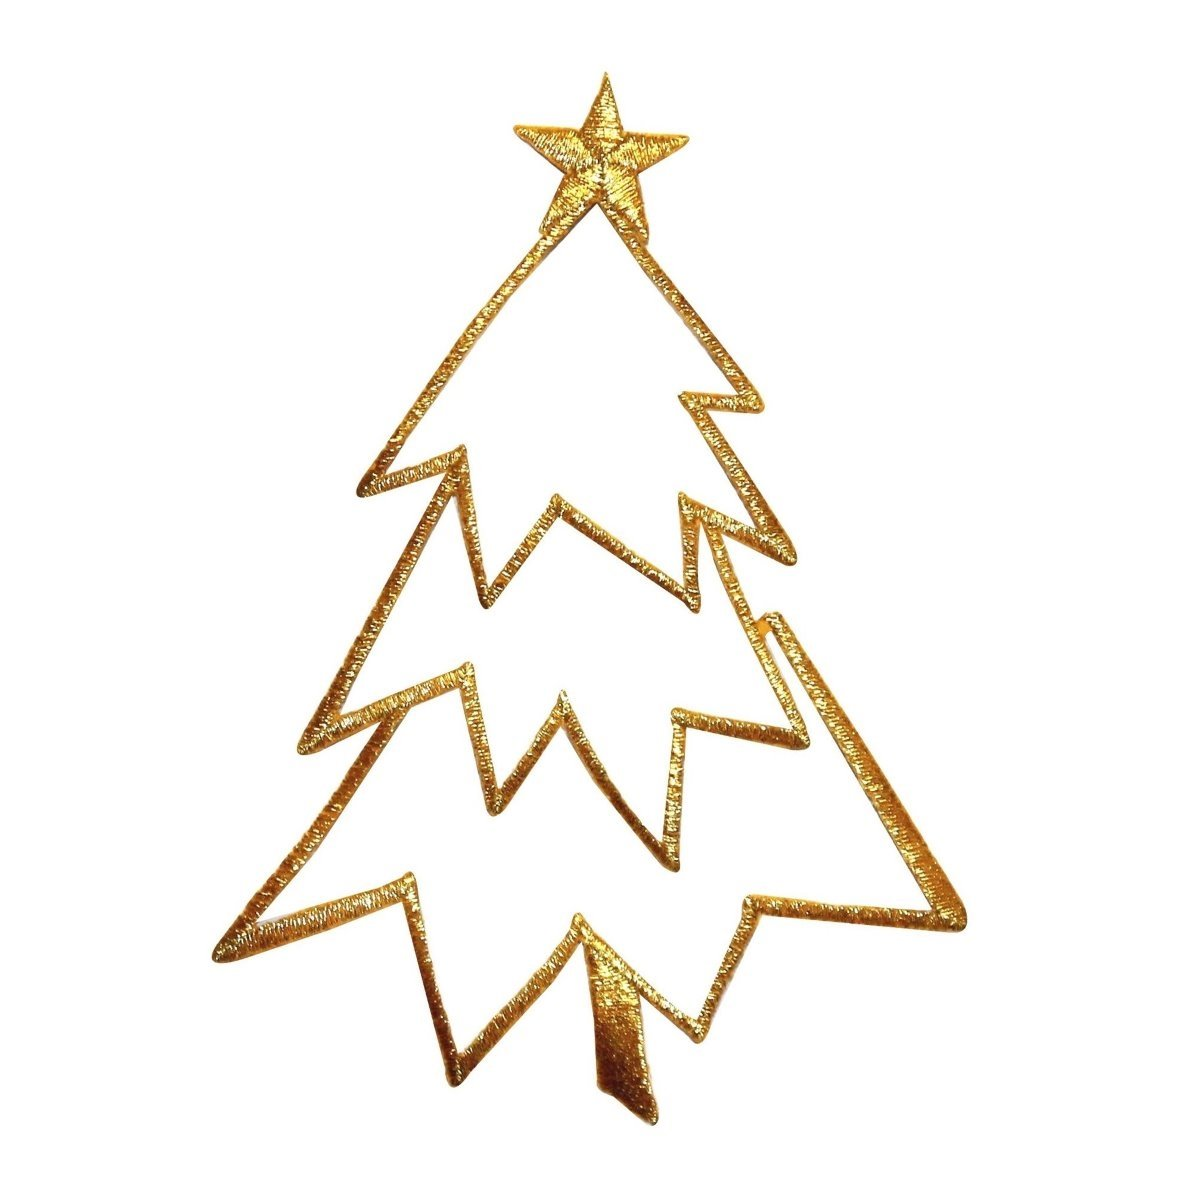 Christmas Tree Outline.Id 8042 Christmas Tree Outline Gold Patch Decoration Embroidered Ironon Applique